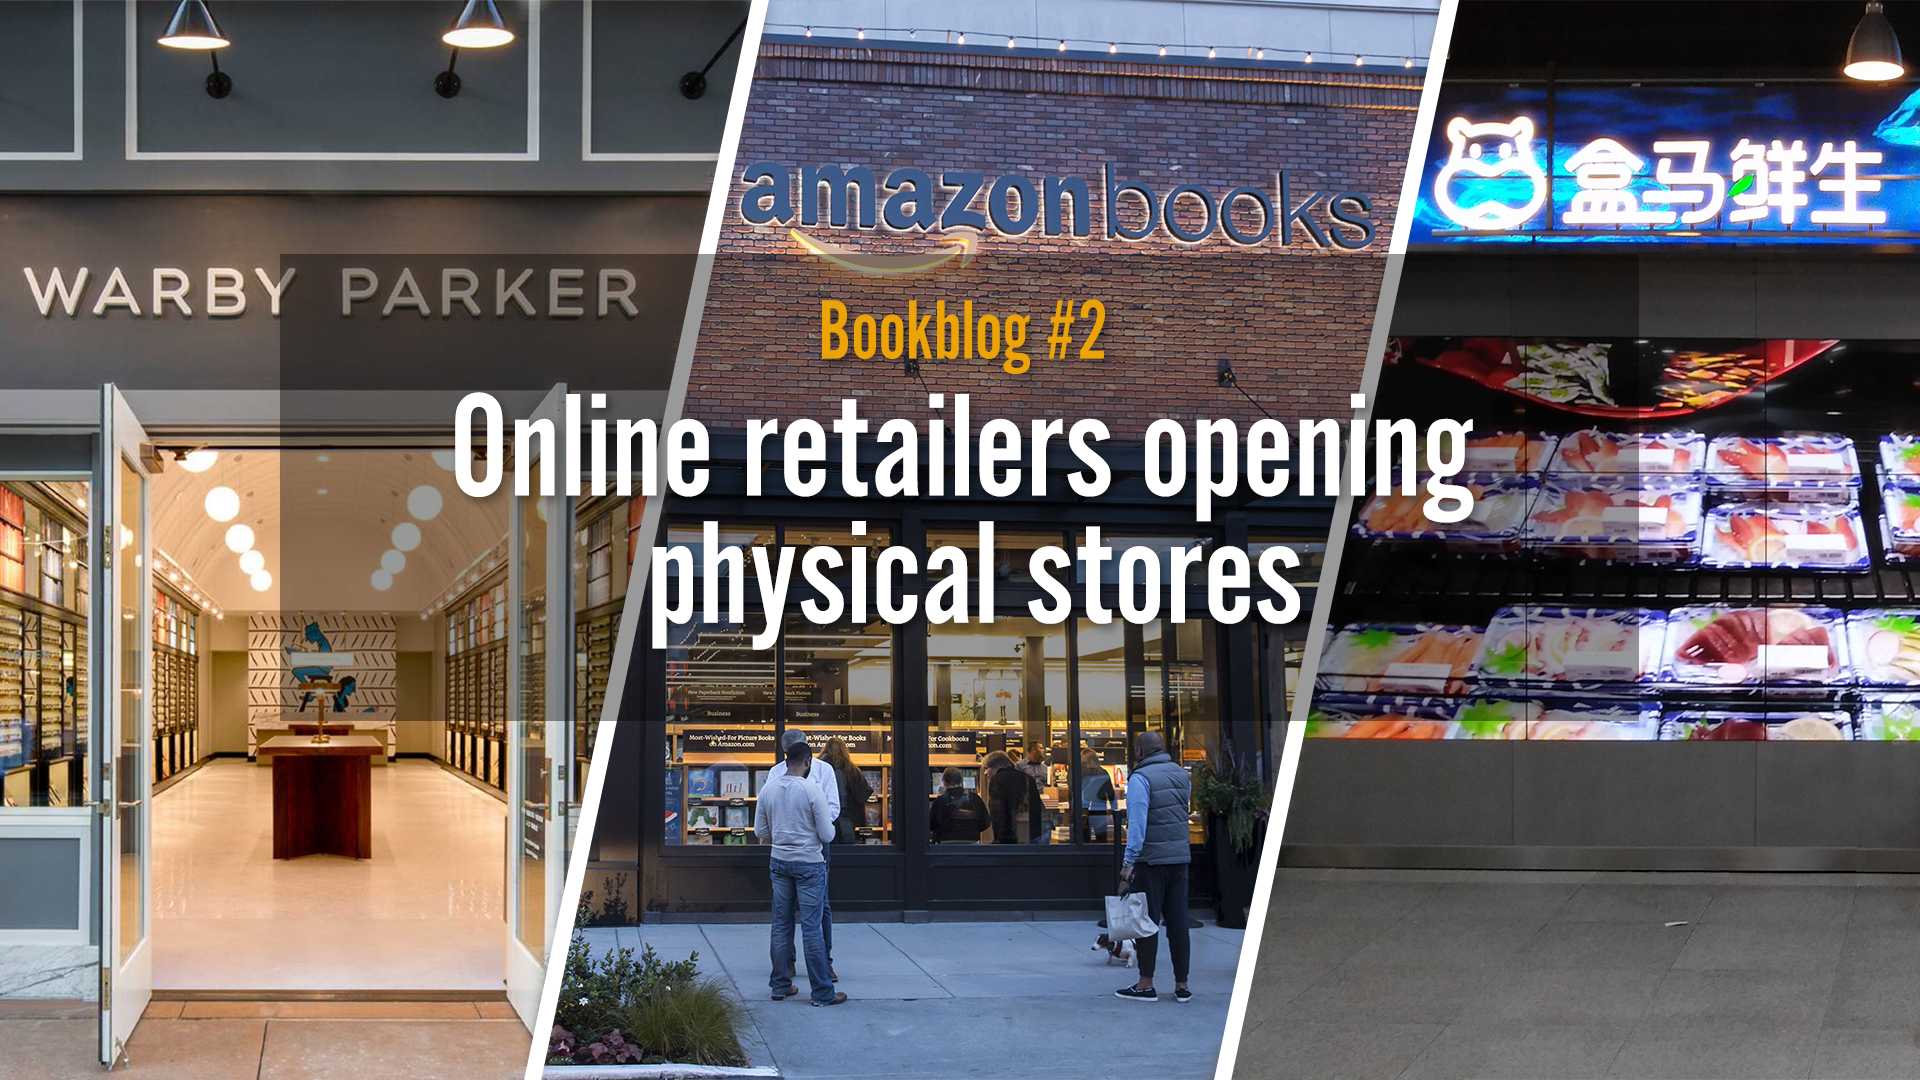 Should online retailers open their own physical stores?